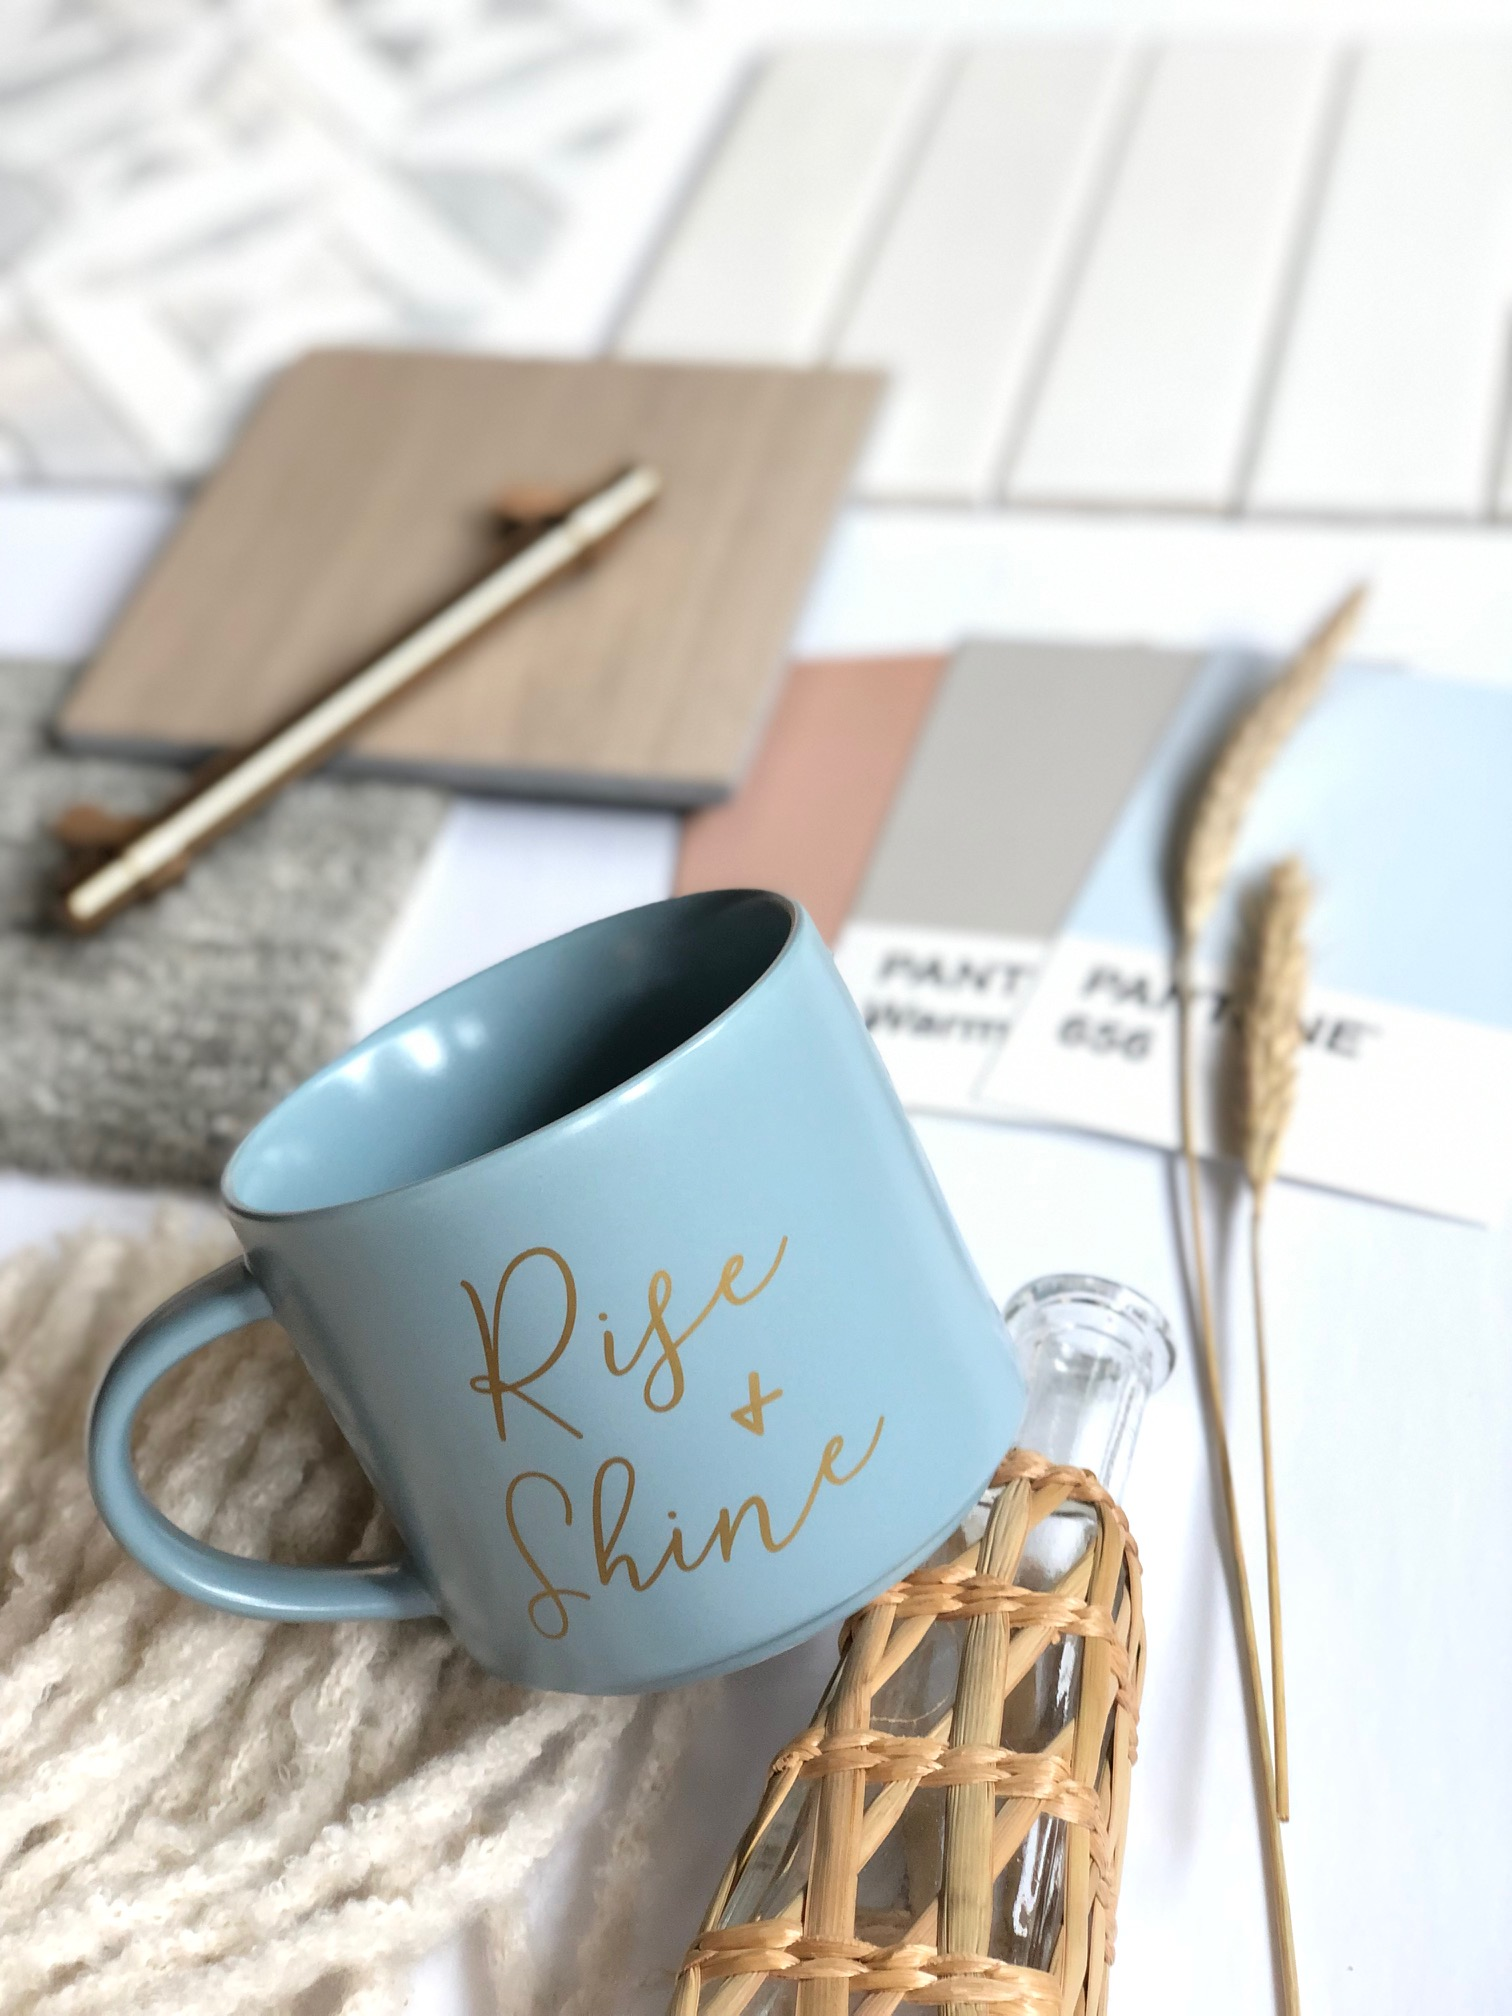 5 Key Tips for Building the Perfect Moodboard